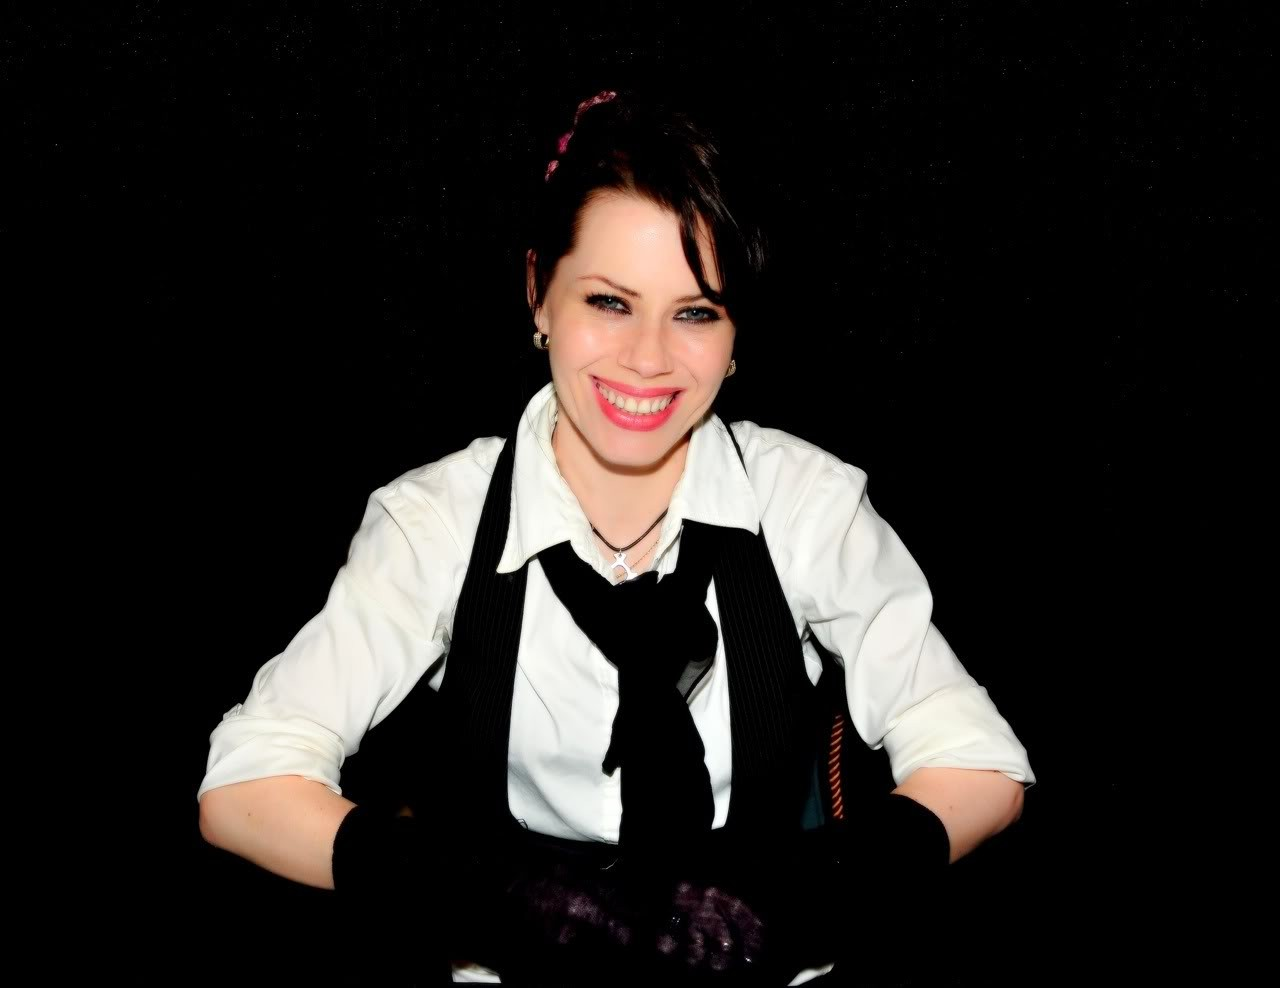 Wallpaper: Fairuza Balk